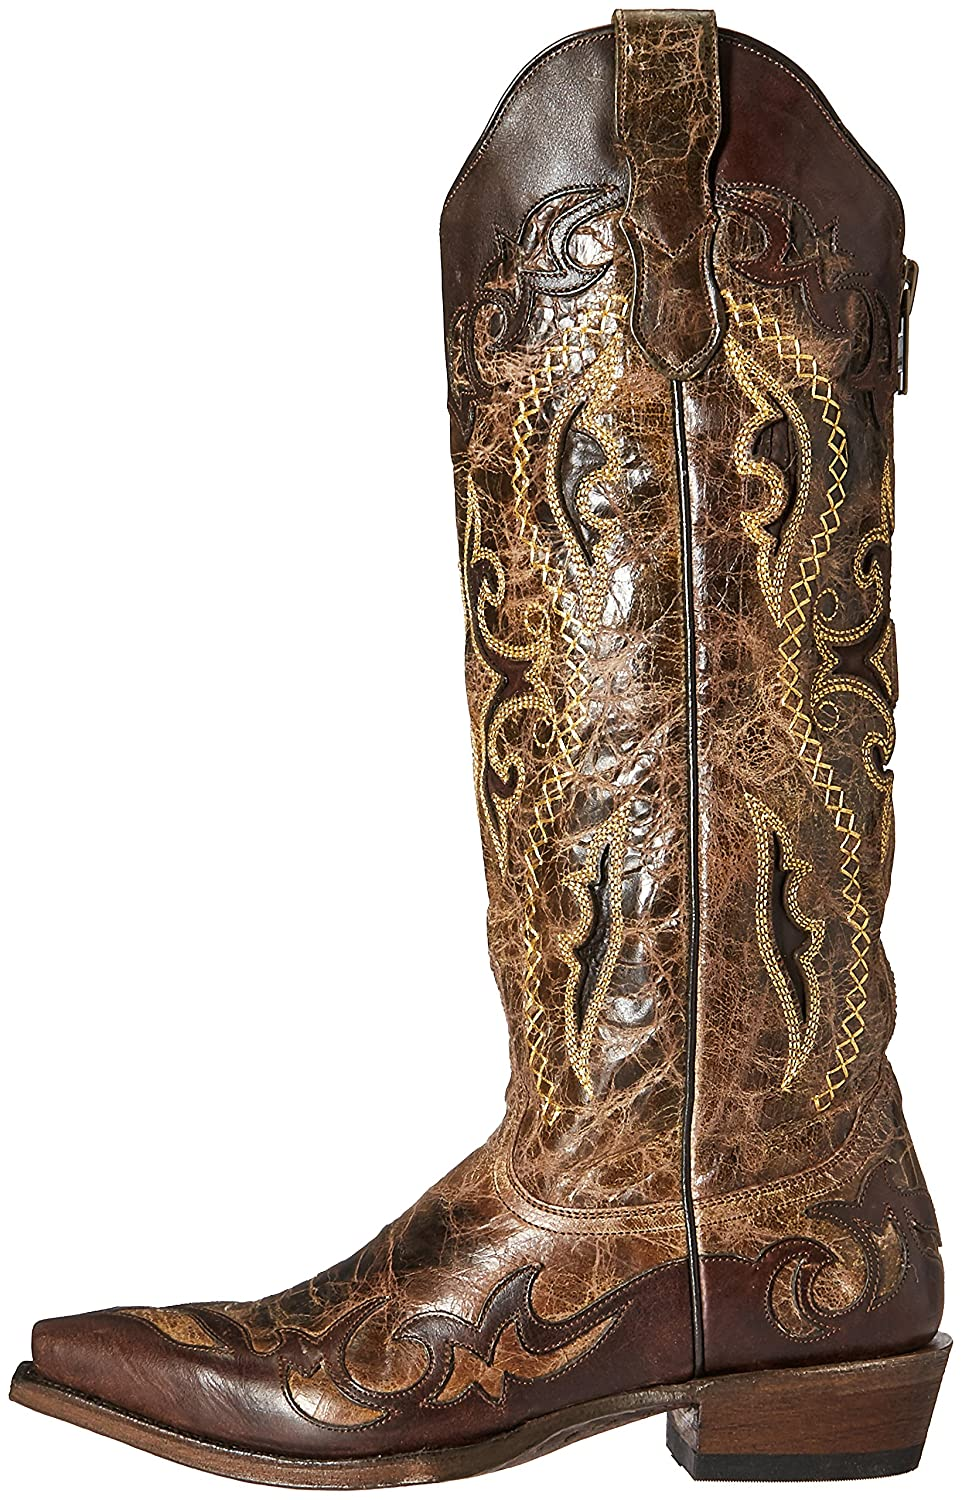 Stetson Boot Women's Vivi Snip Work Boot Stetson B01D3PLIKY 9.5 D US|Brown fcb666